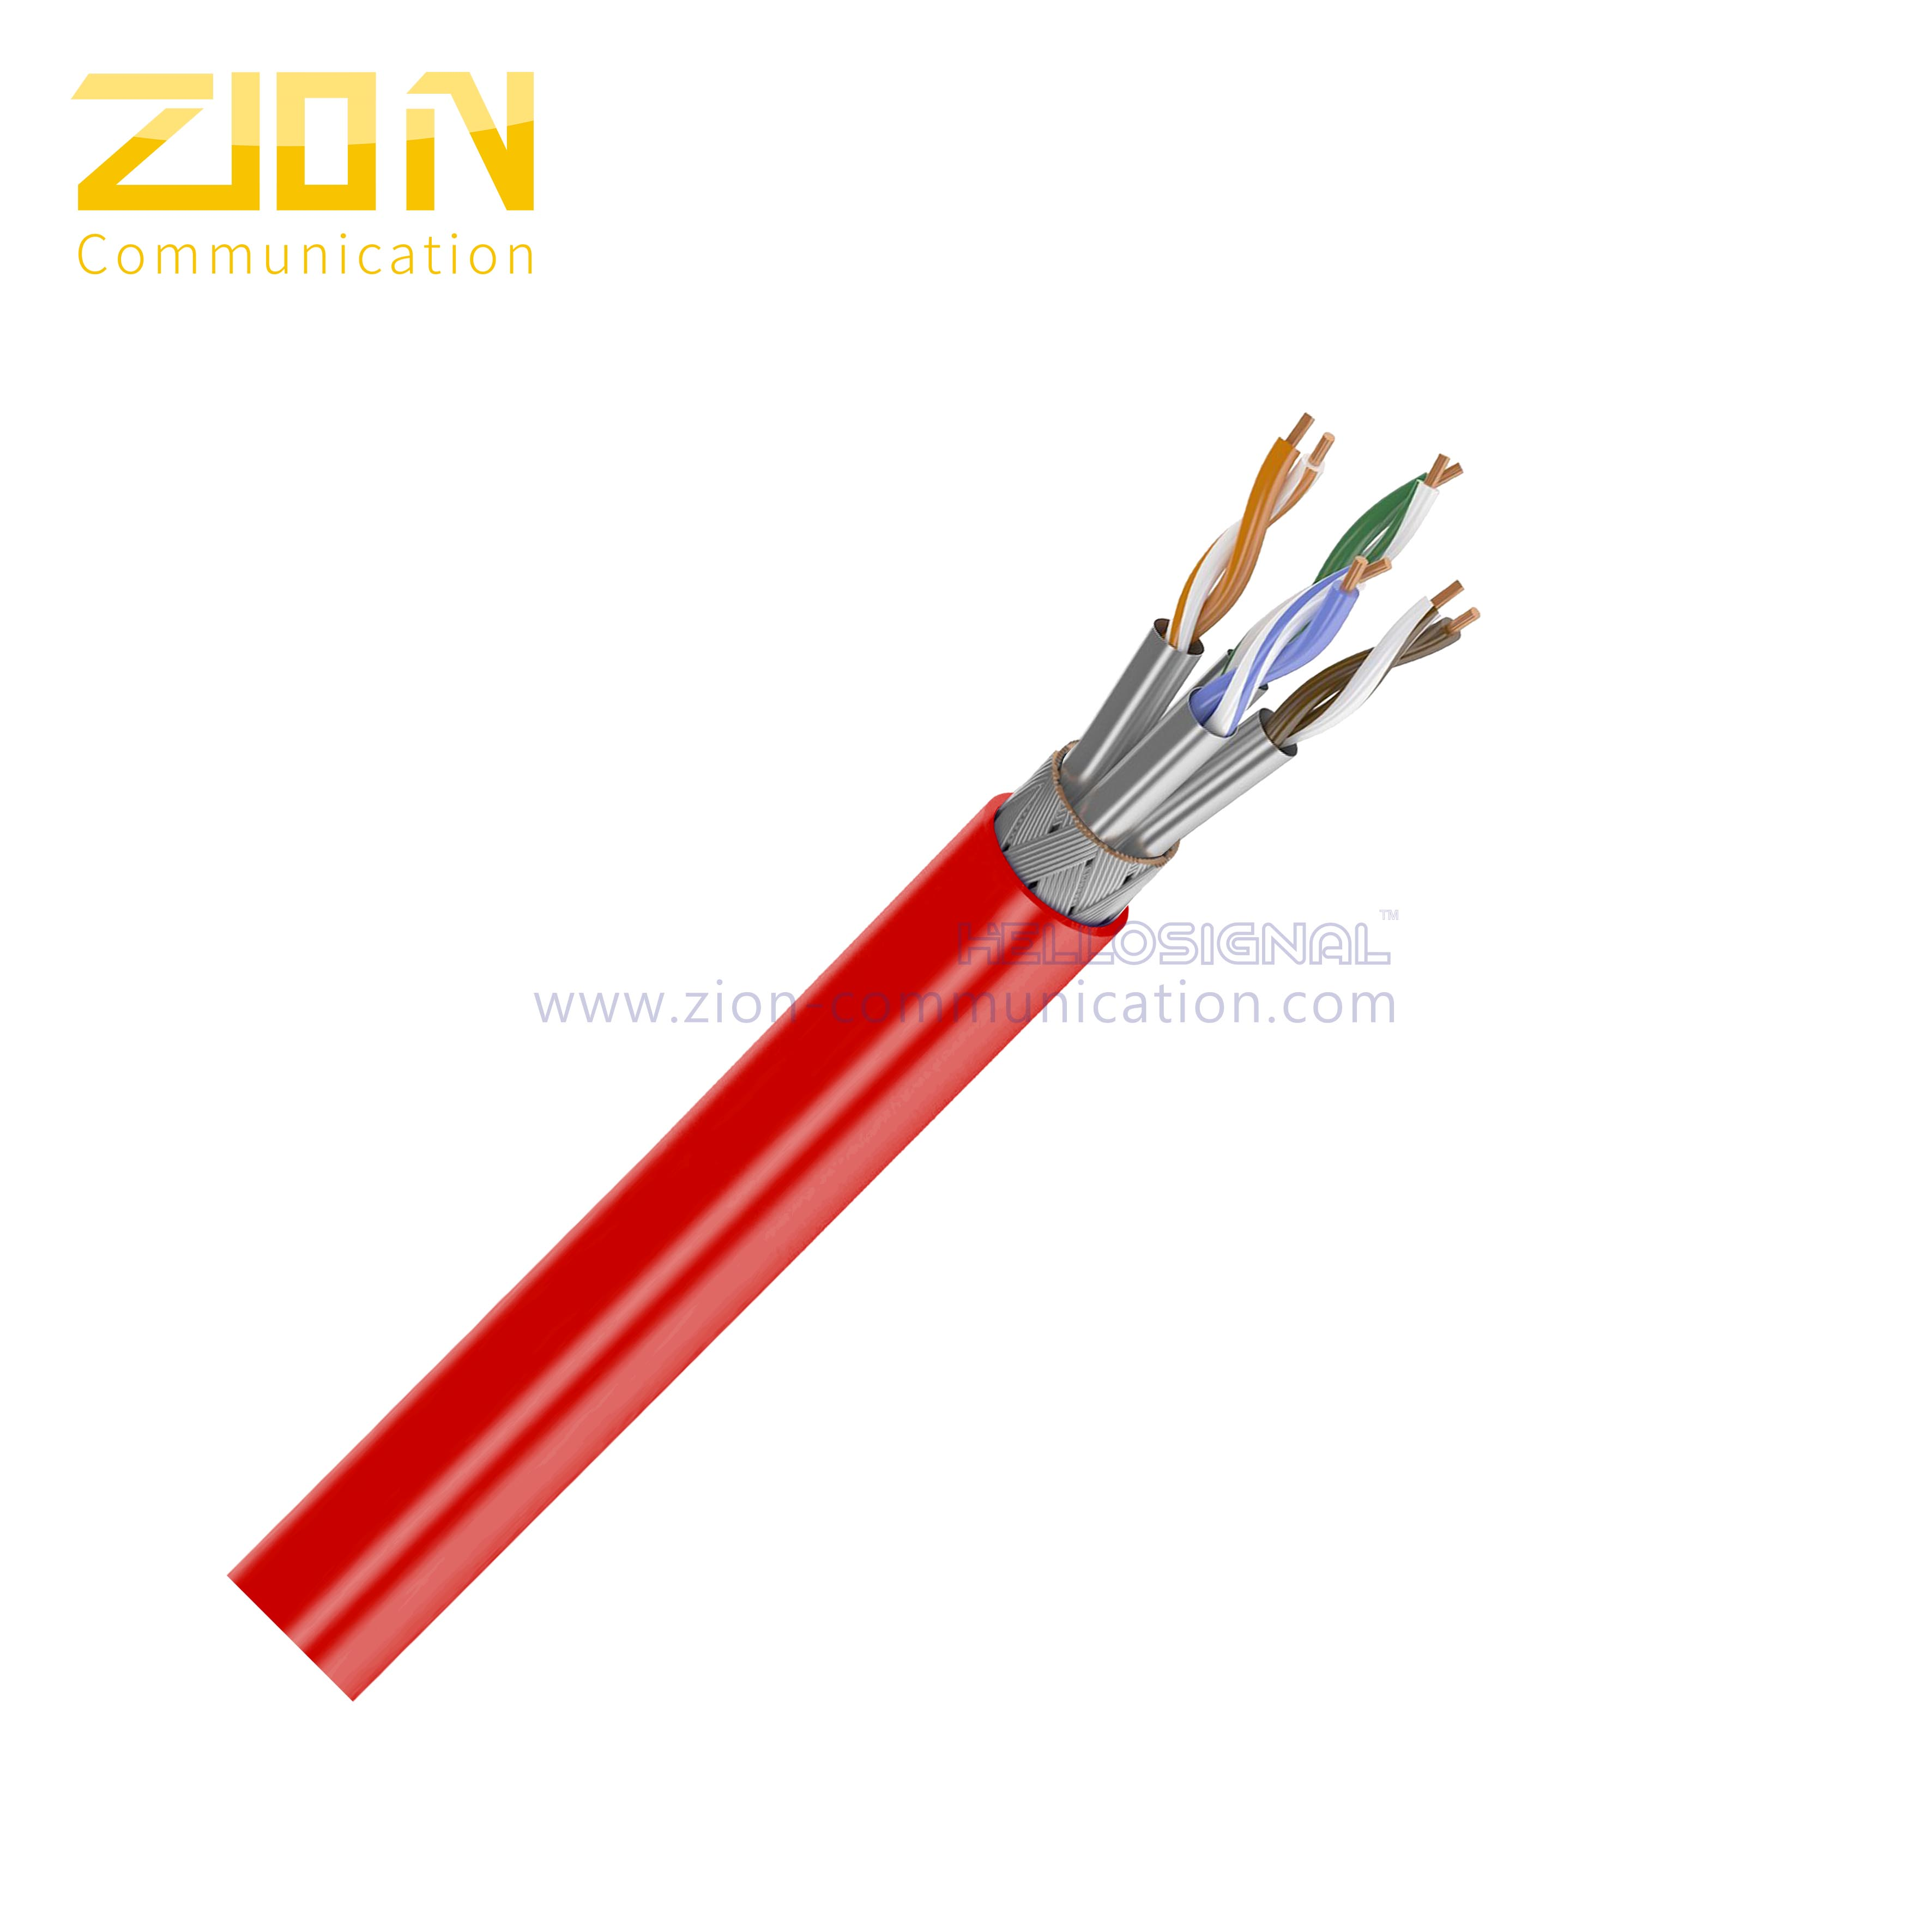 S/FTP CAT 7A BC PVC CMP Twisted Pair Installation Cable